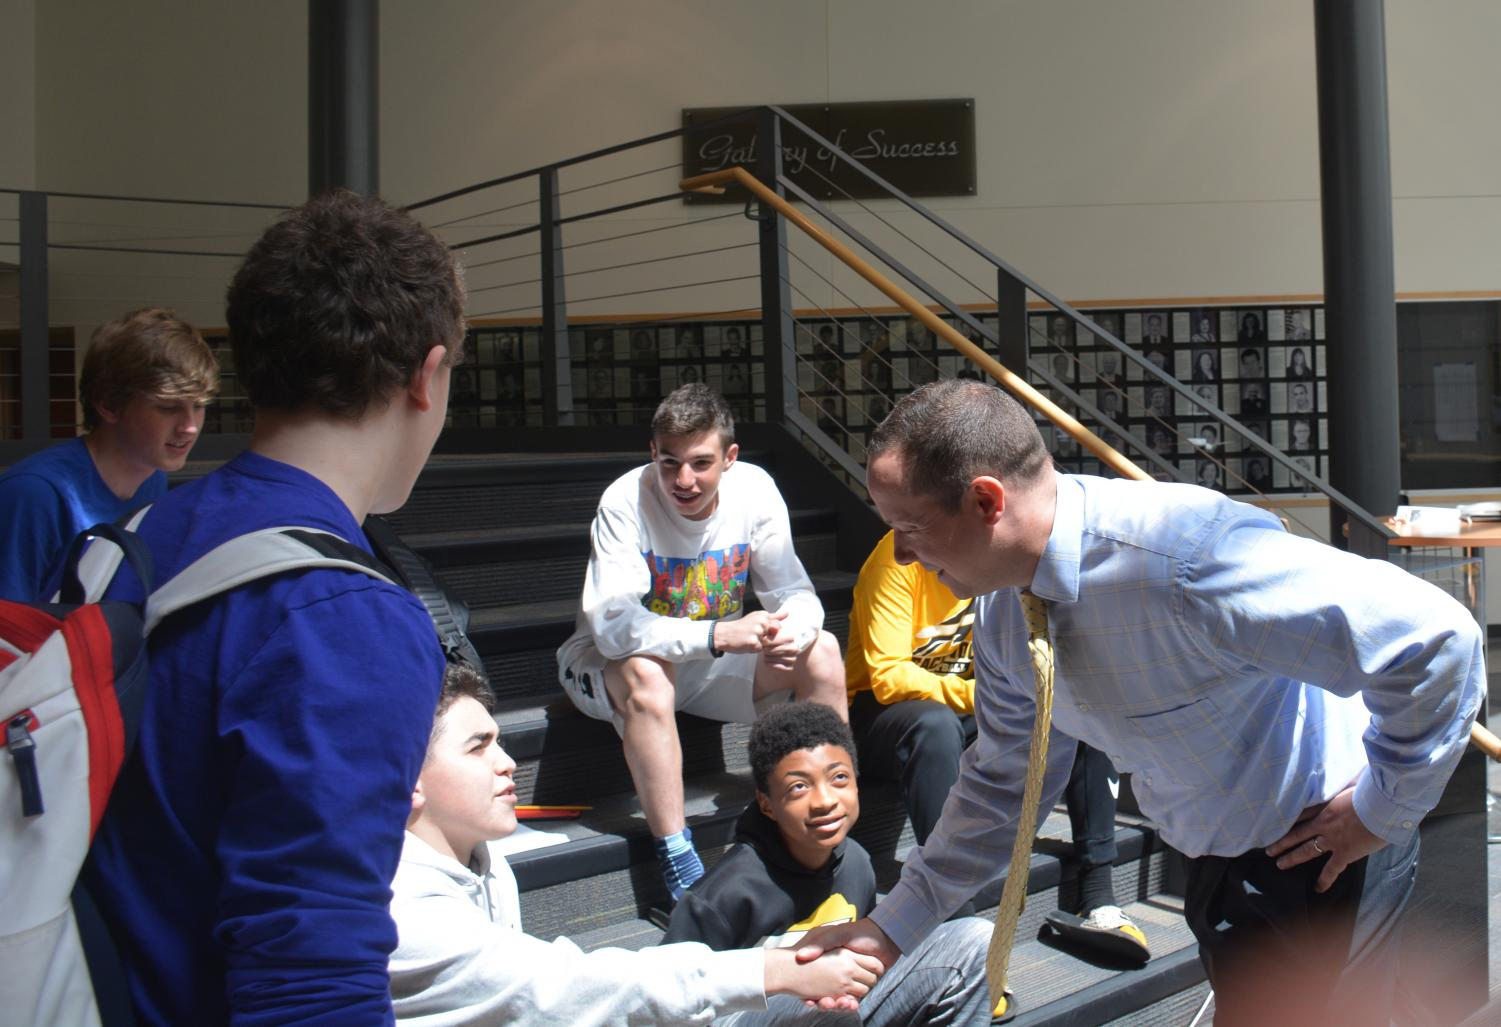 Paul Chase greets students at the high school on Monday, May 20. Photo by Prerna Mukherjee